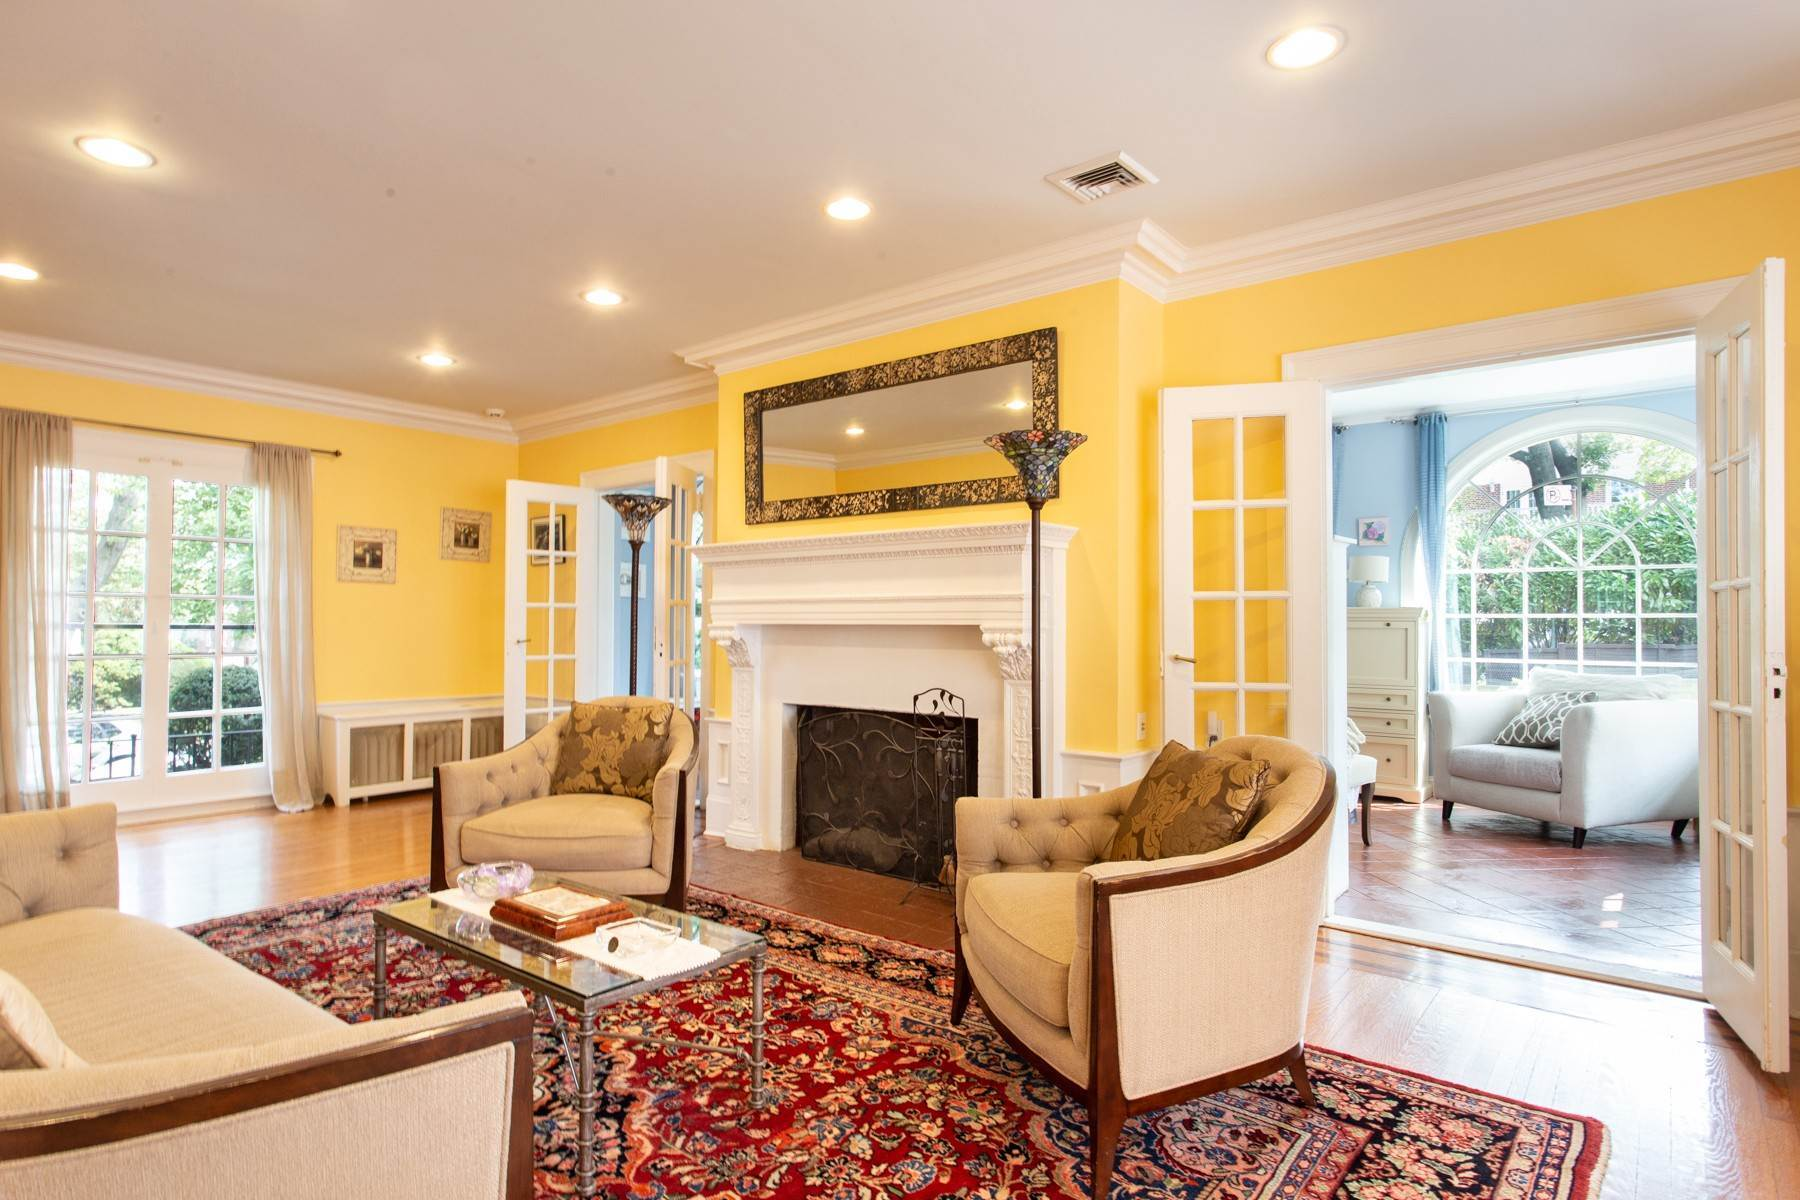 3. Single Family Homes for Sale at 'KEW GARDENS MEDITERRANEAN MASTERPIECE' 48 Beverly Road, Kew Gardens, New York 11415 United States